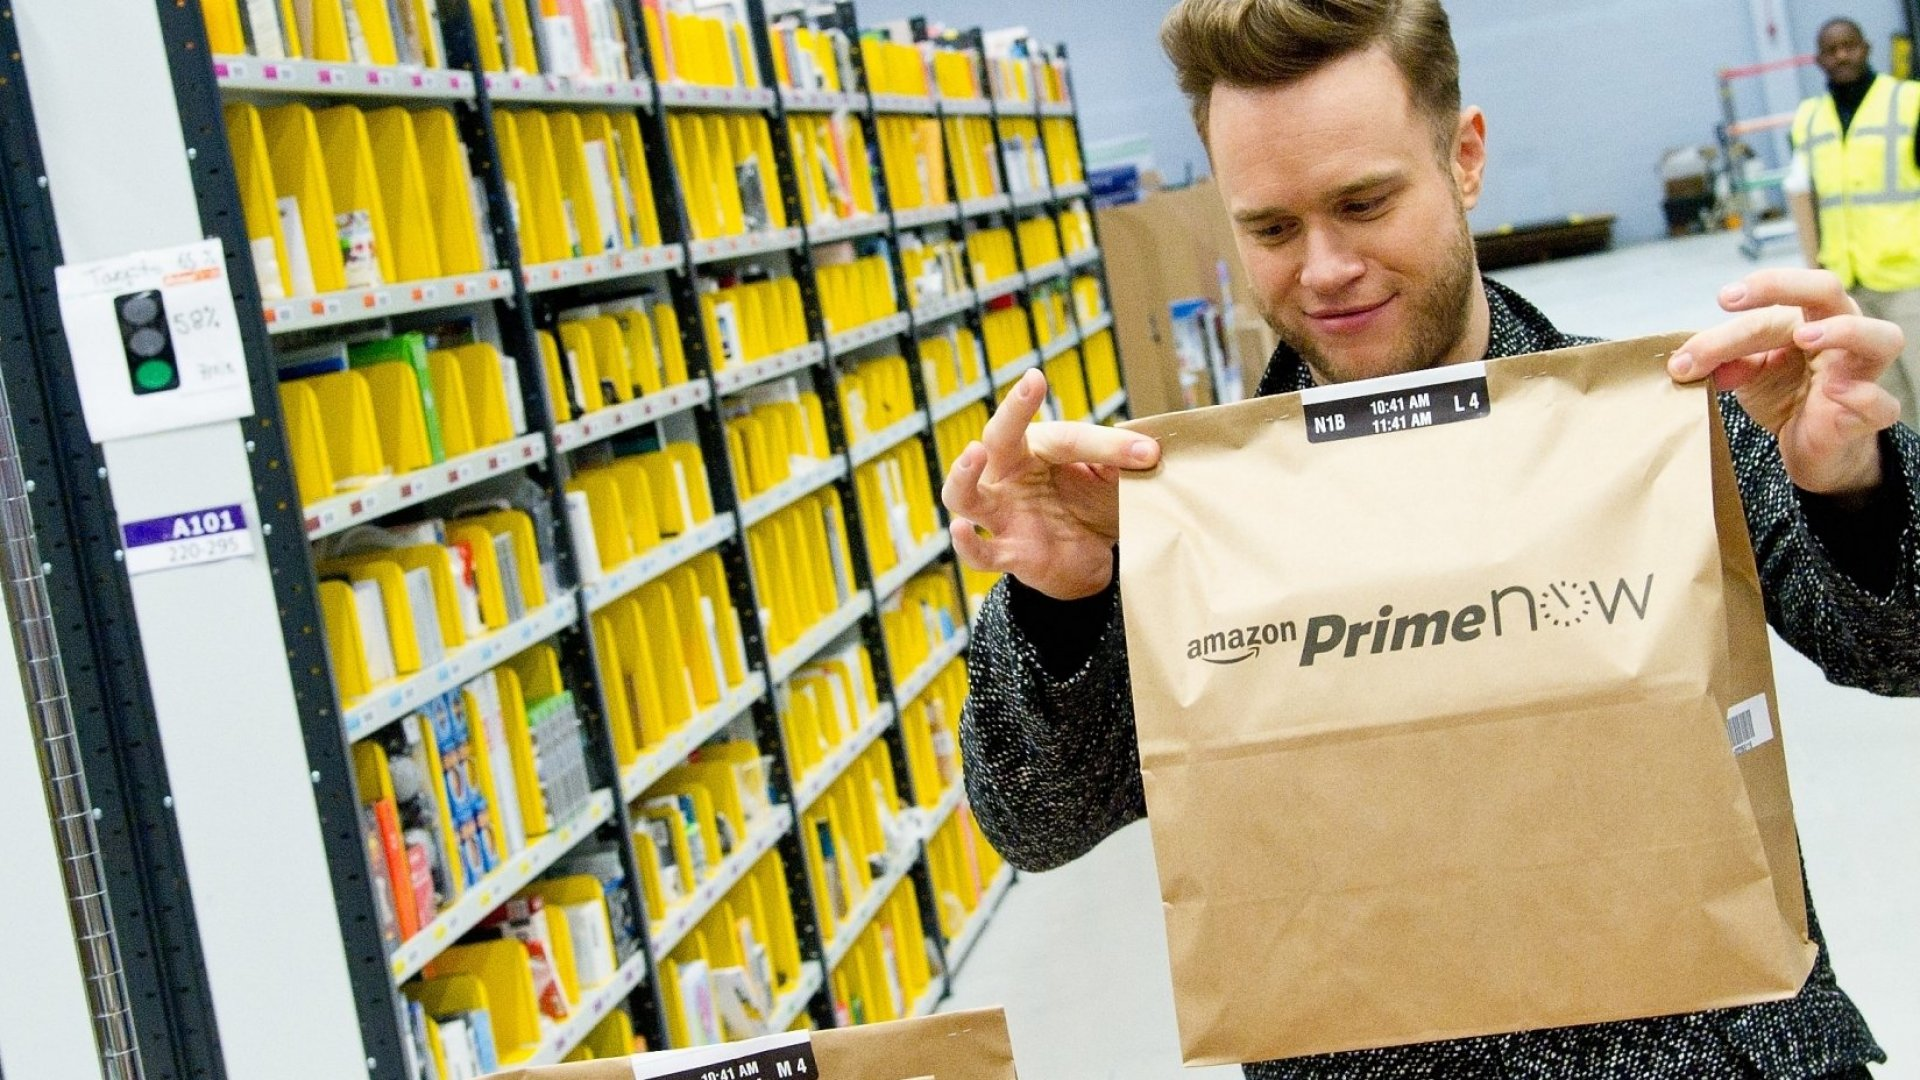 How a Tiny Company With No Marketing Built the No. 1 Product on Amazon